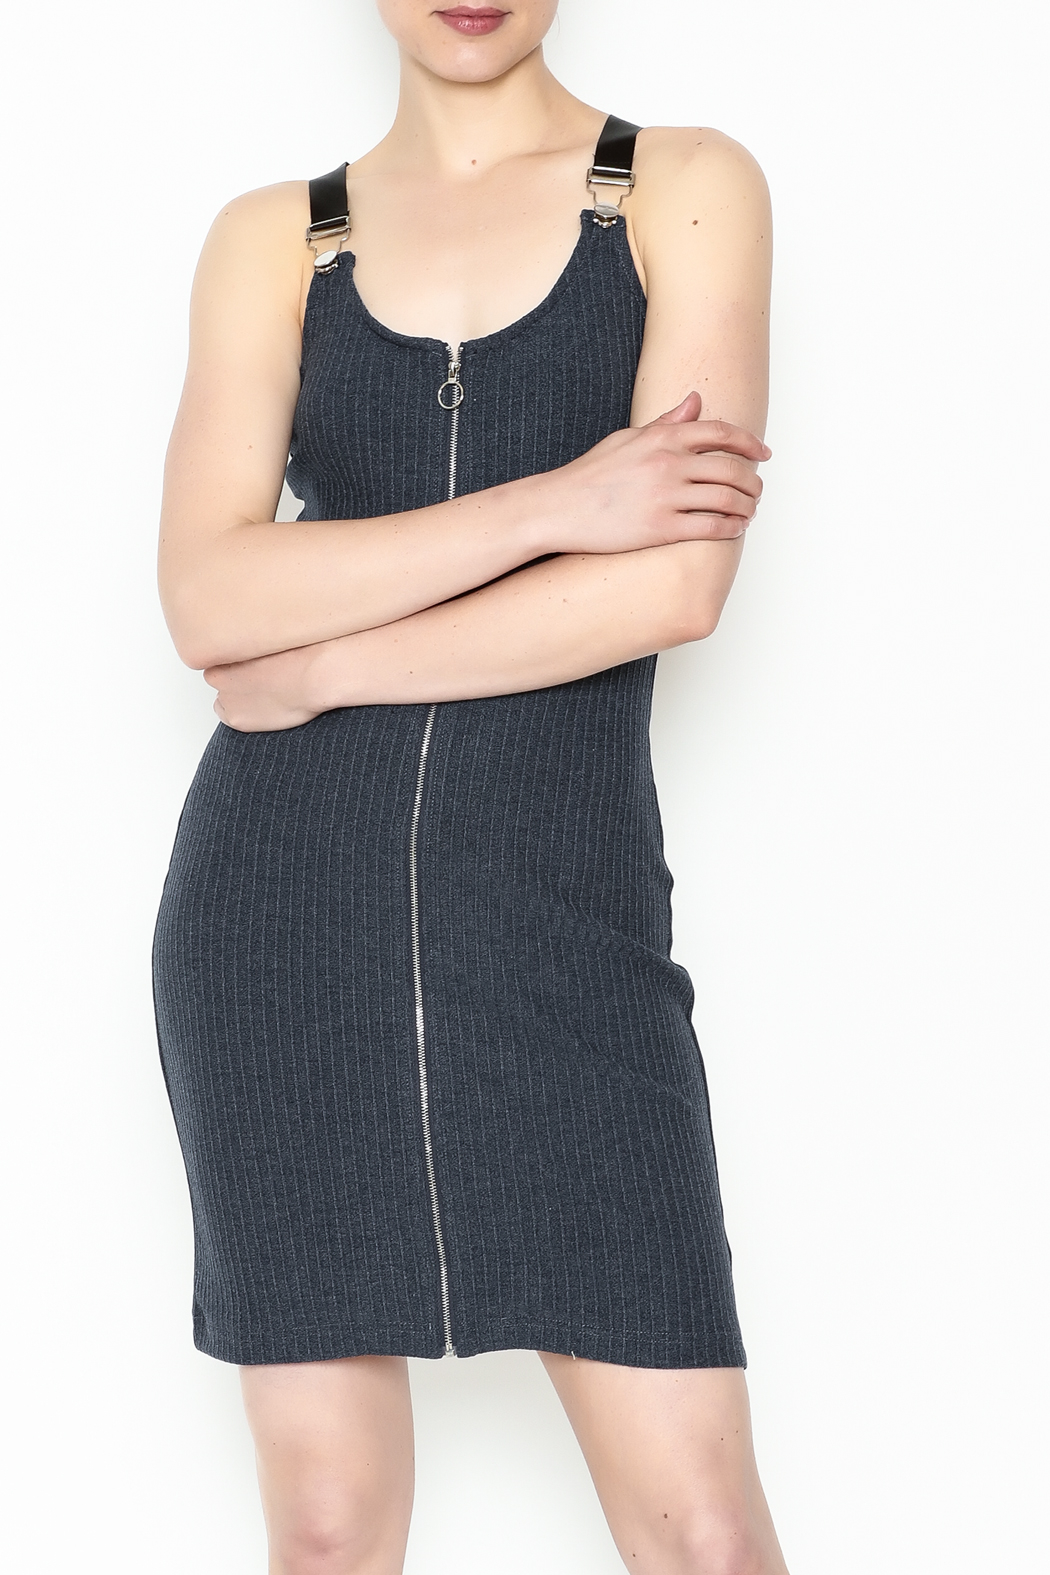 storia Black Strap Dress - Main Image